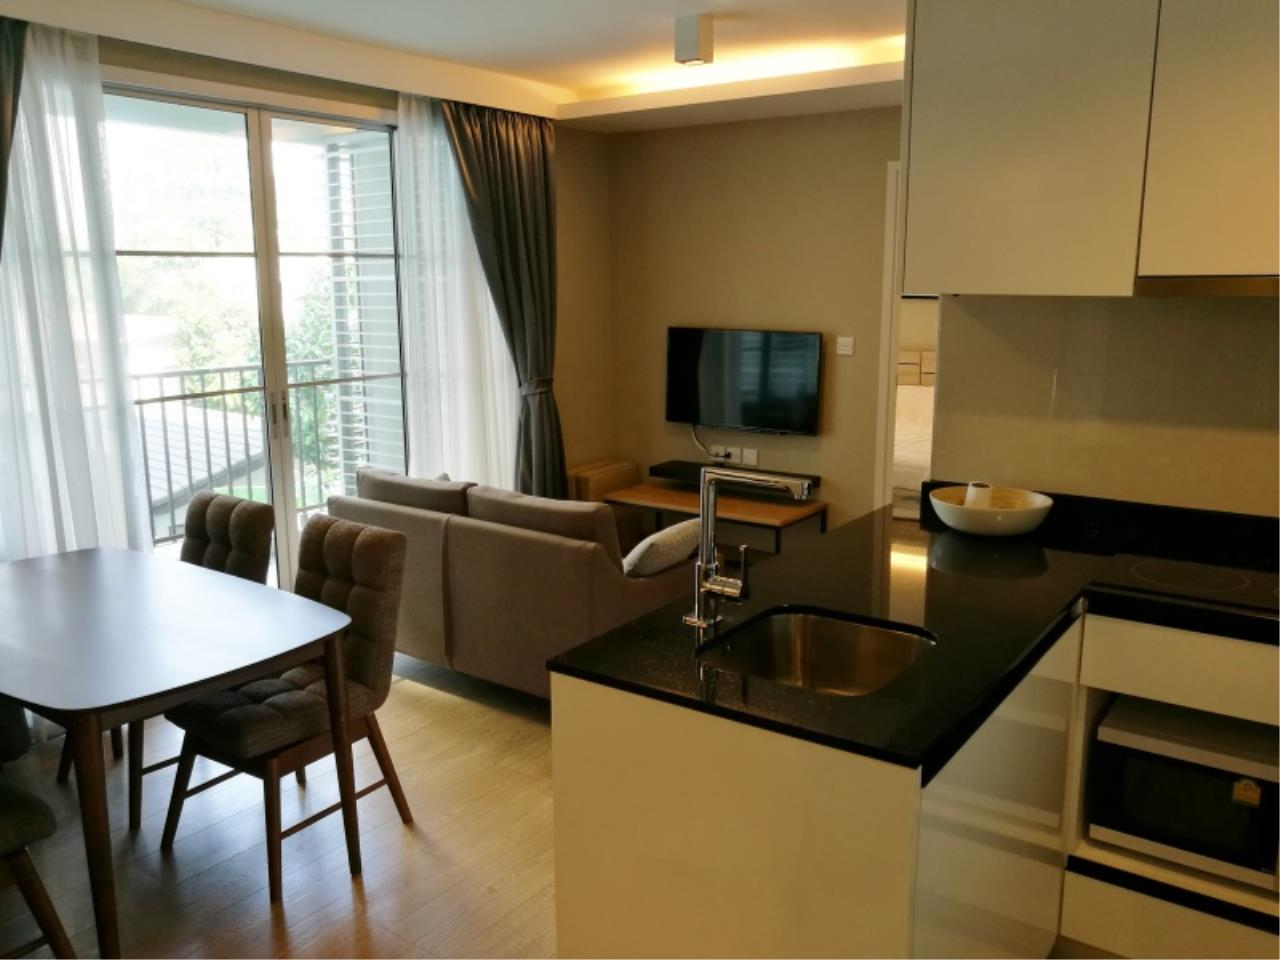 Century21 Skylux Agency's Maestro 39 / Condo For Sale / 2 Bedroom / 60 SQM / BTS Phrom Phong / Bangkok 1